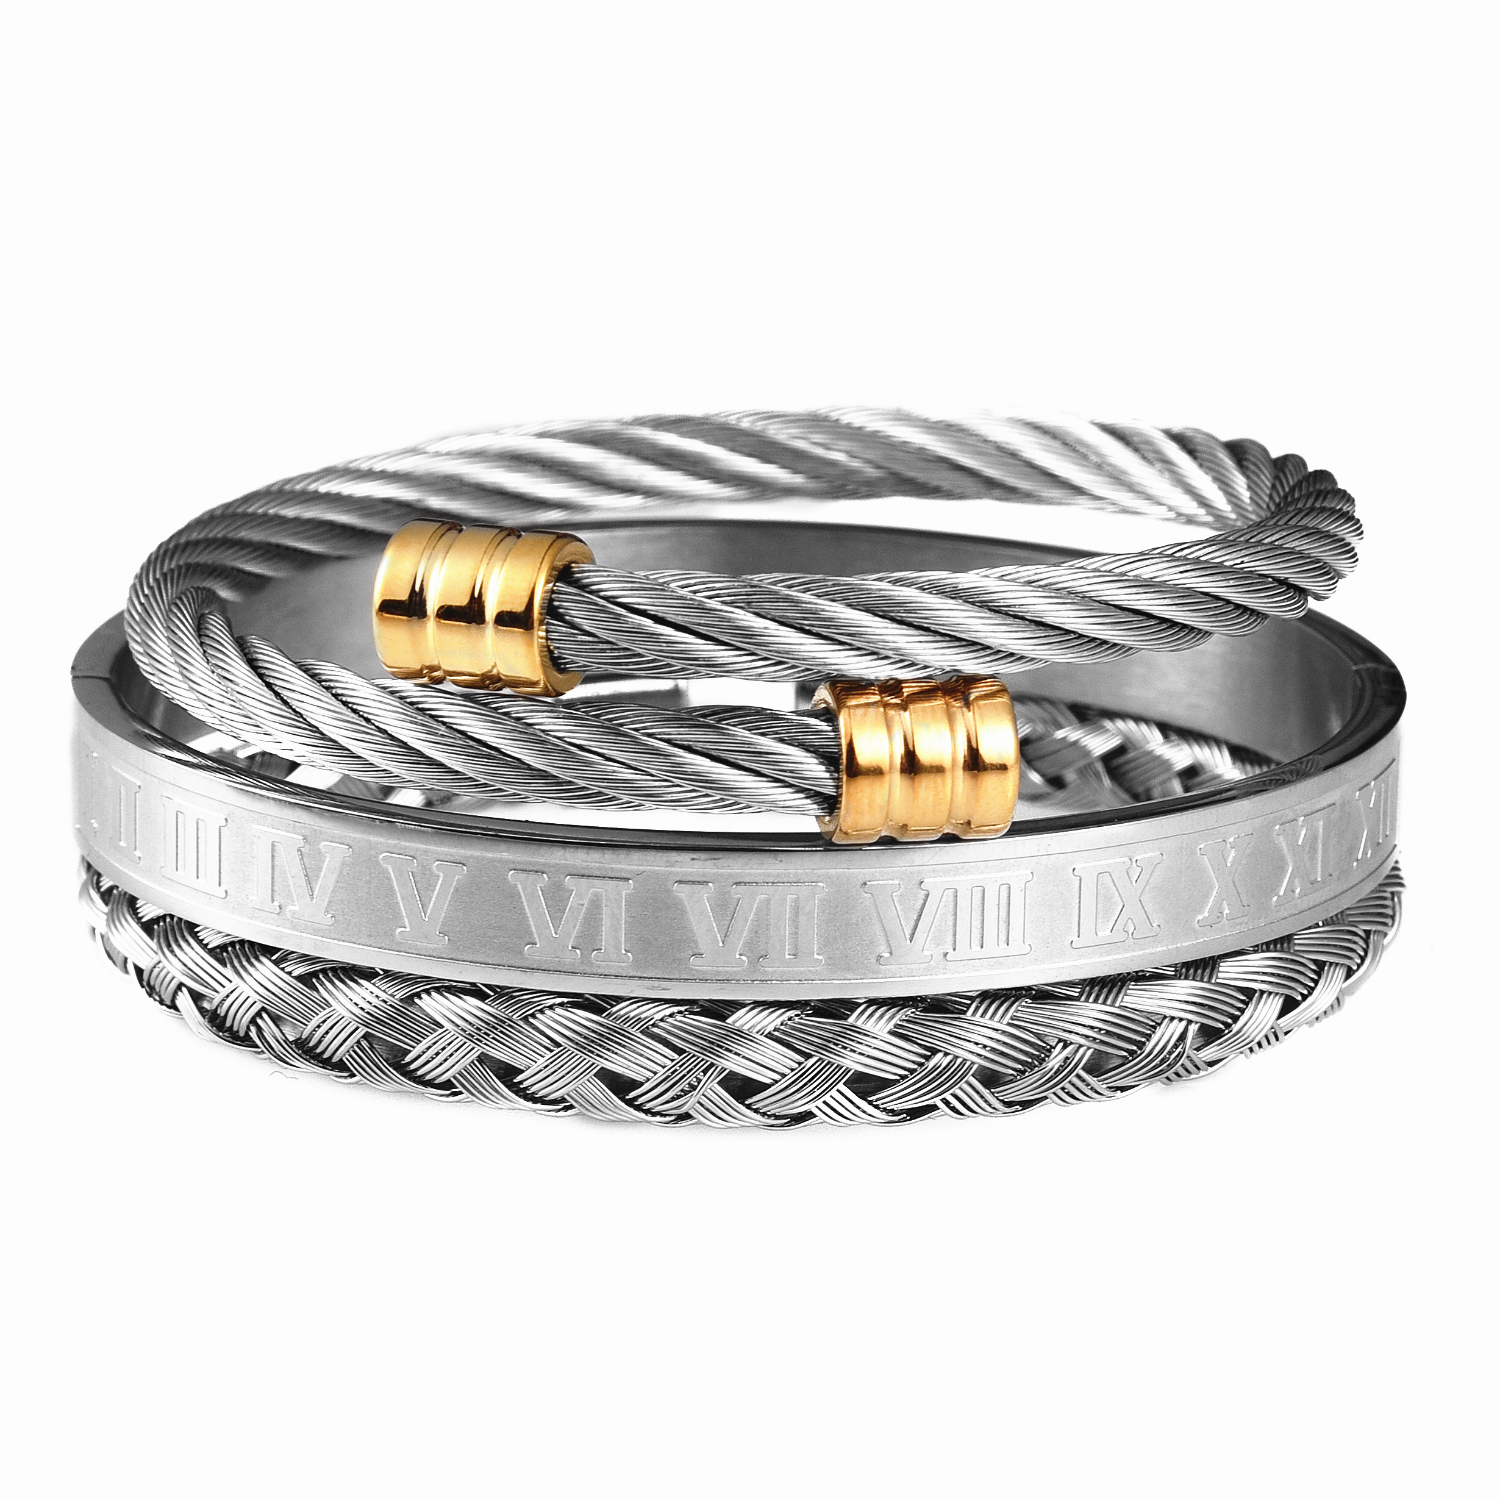 3pcs/Set Roman Numeral Men Bracelet Handmade Stainless Steel Hemp Rope Buckle Open Bangles Pulseira Bileklik Luxury Jewelry